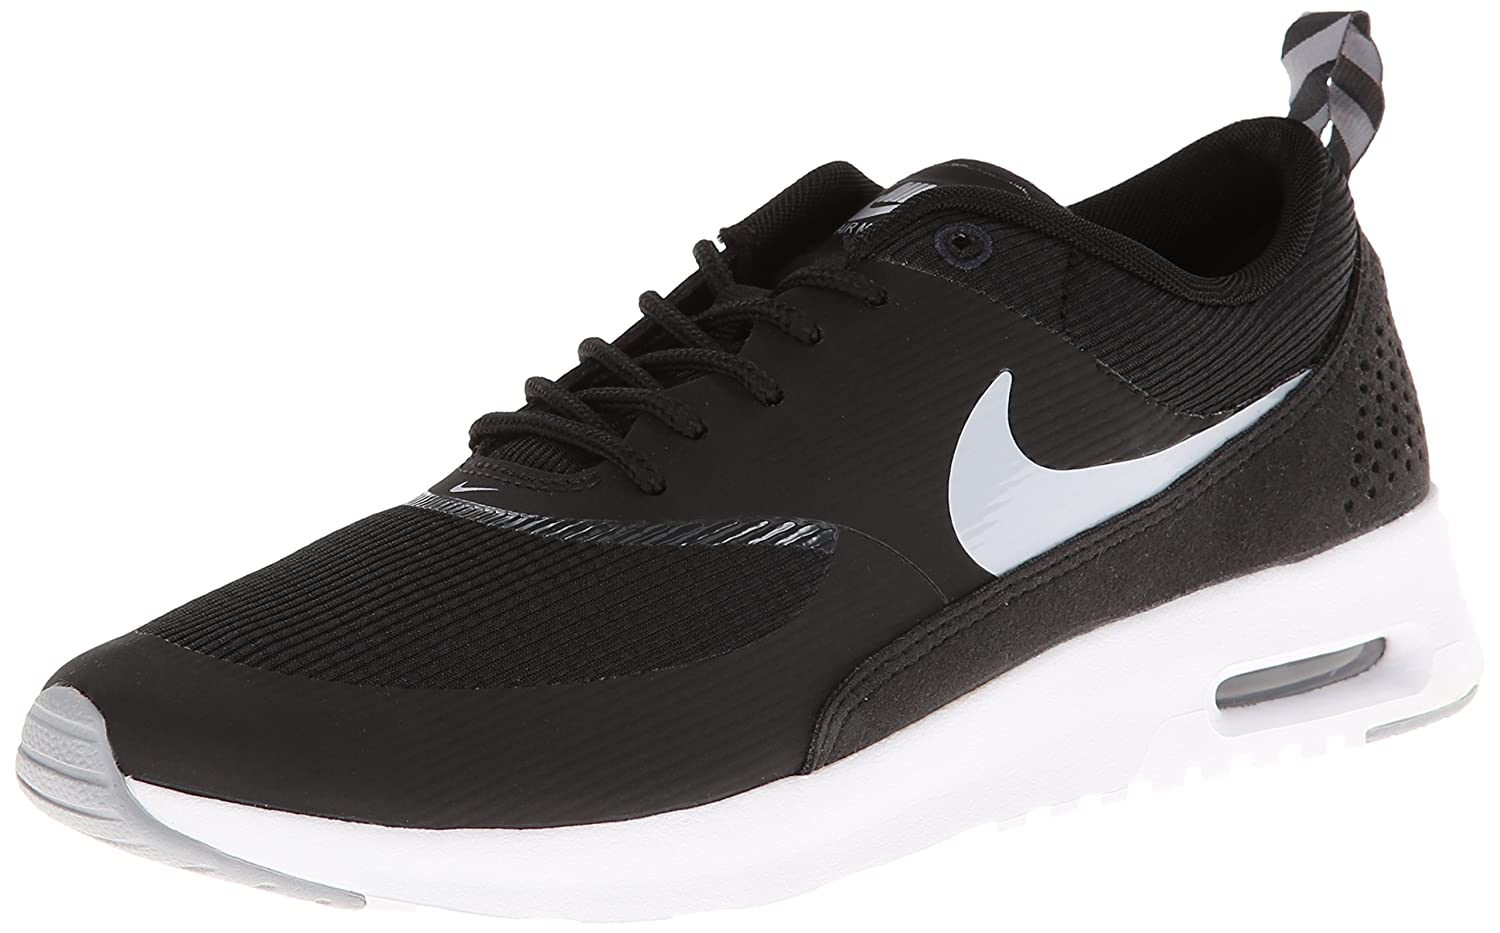 NIKE Women's Air Max Thea Low-Top Sneakers, Black B00H30CADA 8.5 B(M) US|007-black Wolf Grey Anthracite White